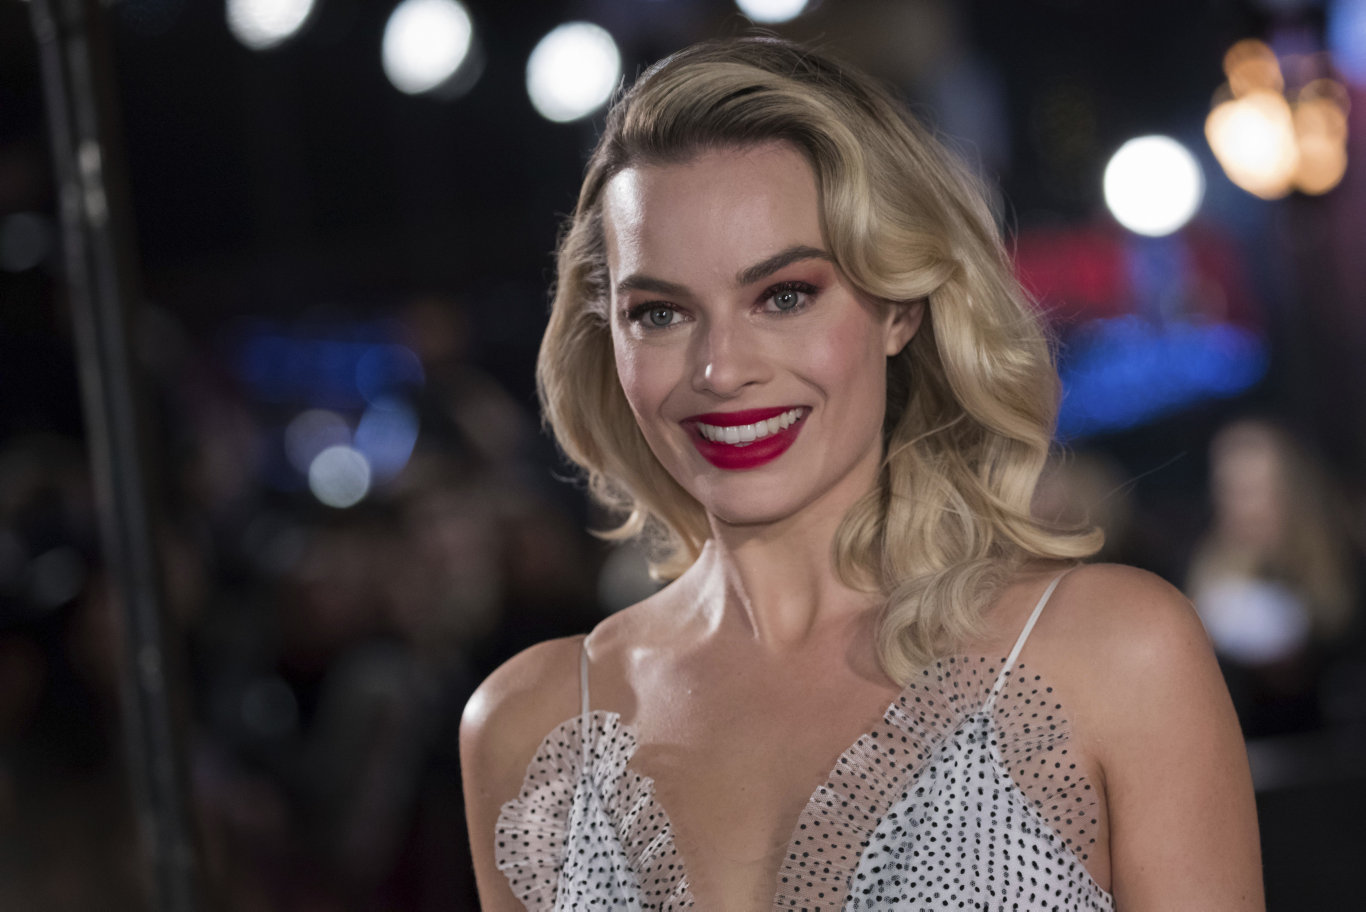 Margot Robbie has been cast as Barbie in the new live-action Mattel movie.